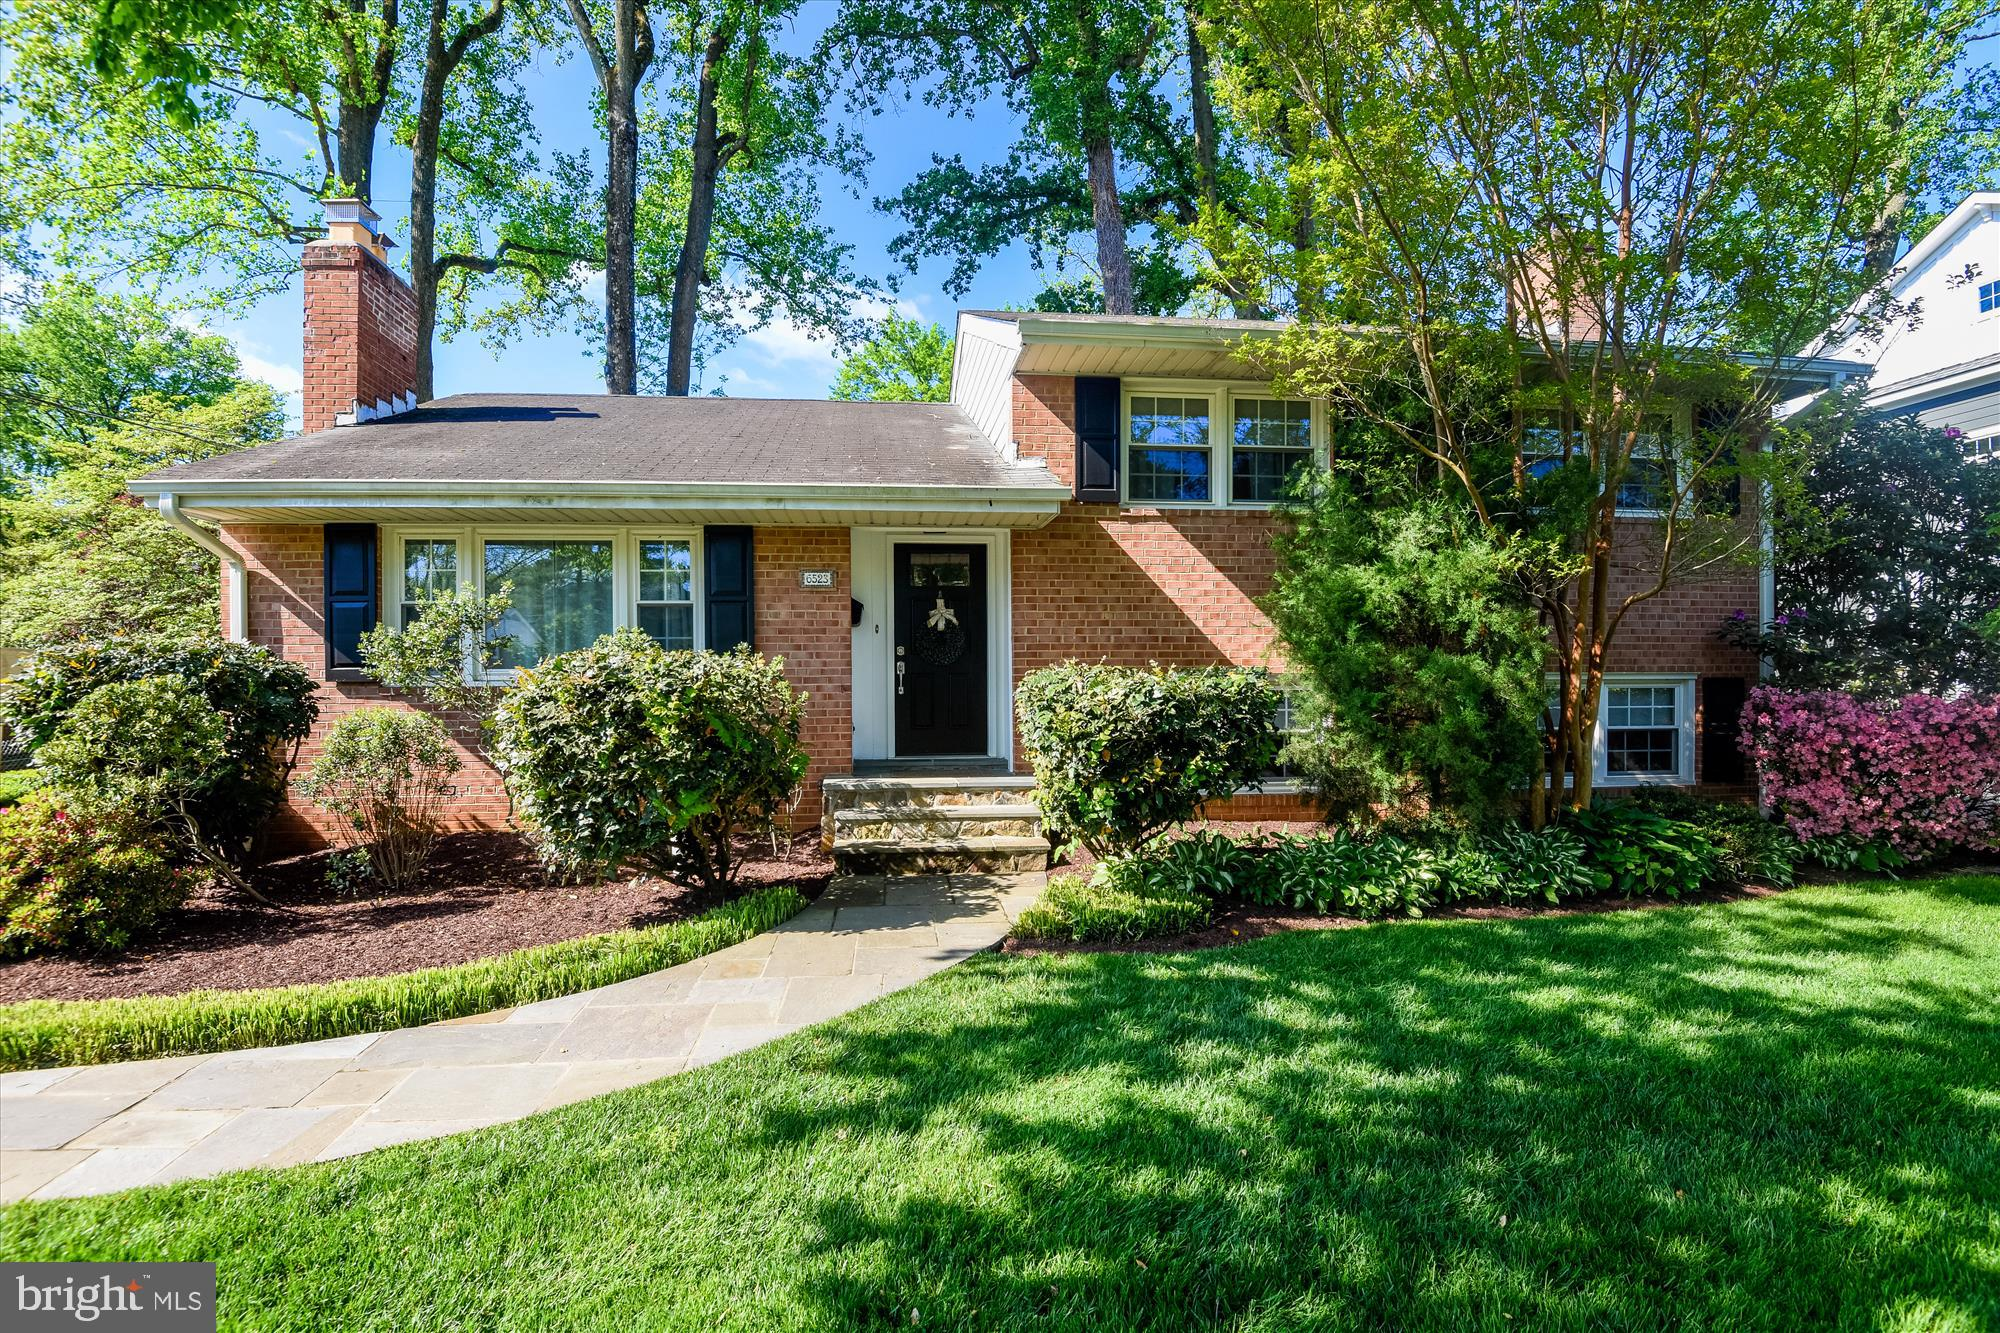 Beautifully maintained 4-level split in McLean! The lot is 11,172 sq ft and features well cared for landscaping, long driveway, mature trees, storage shed, and lots of beautiful flowers. The brick home has been appointed with black shutters and a matching black door for some modern curb appeal. Inside the front door you'll be greeted with hardwood floors, crown molding, a foyer open to a living room centered on a gas fireplace with mantel, which opens to a large dining area and renovated kitchen. The kitchen is large in footprint, features a skylight and bay window for lots of natural light, electric range with downdraft, stainless steel appliances, ample cabinet space, and counter space. The dining room leads to a large deck with lights. Upstairs you'll find a primary bedroom suite with closet, rarely found large bathroom with glass enclosed shower and double vanity. The 2 other bedrooms share a renovated hall bath with tub. There's a linen closet with a laundry chute! Hardwood floors can be found in the upper level as well. The lower level features newer carpet, a well light, mostly above ground rec space surrounding a wood burning fireplace with a white brick hearth. There's a bedroom with large closet and full bath on this level as well with storage closets and exit to the backyard.  The 4th level is also carpeted, features the utility and laundry rooms, each with additional storage space. There's a sump pump with a battery backup as well. This space makes a great rec room, office, gym, play room, or anything else you might need! Updates include HVAC (2010), Water Heater (2010), Dishwasher, Washing Machine, Front and Back Door,  Gutters, Skylight, kitchen backsplash, shed roof, renovated hall bathroom, carpet, and windows. Quiet dead-end street, but close to Downtown McLean. Enjoy Balducci's, Restaurants, McLean central park, library, easy access to Tyson's, 495, 66, or 267. Lots of McLean events year round like McLean Day, Winterfest, Farmer's Market, events at